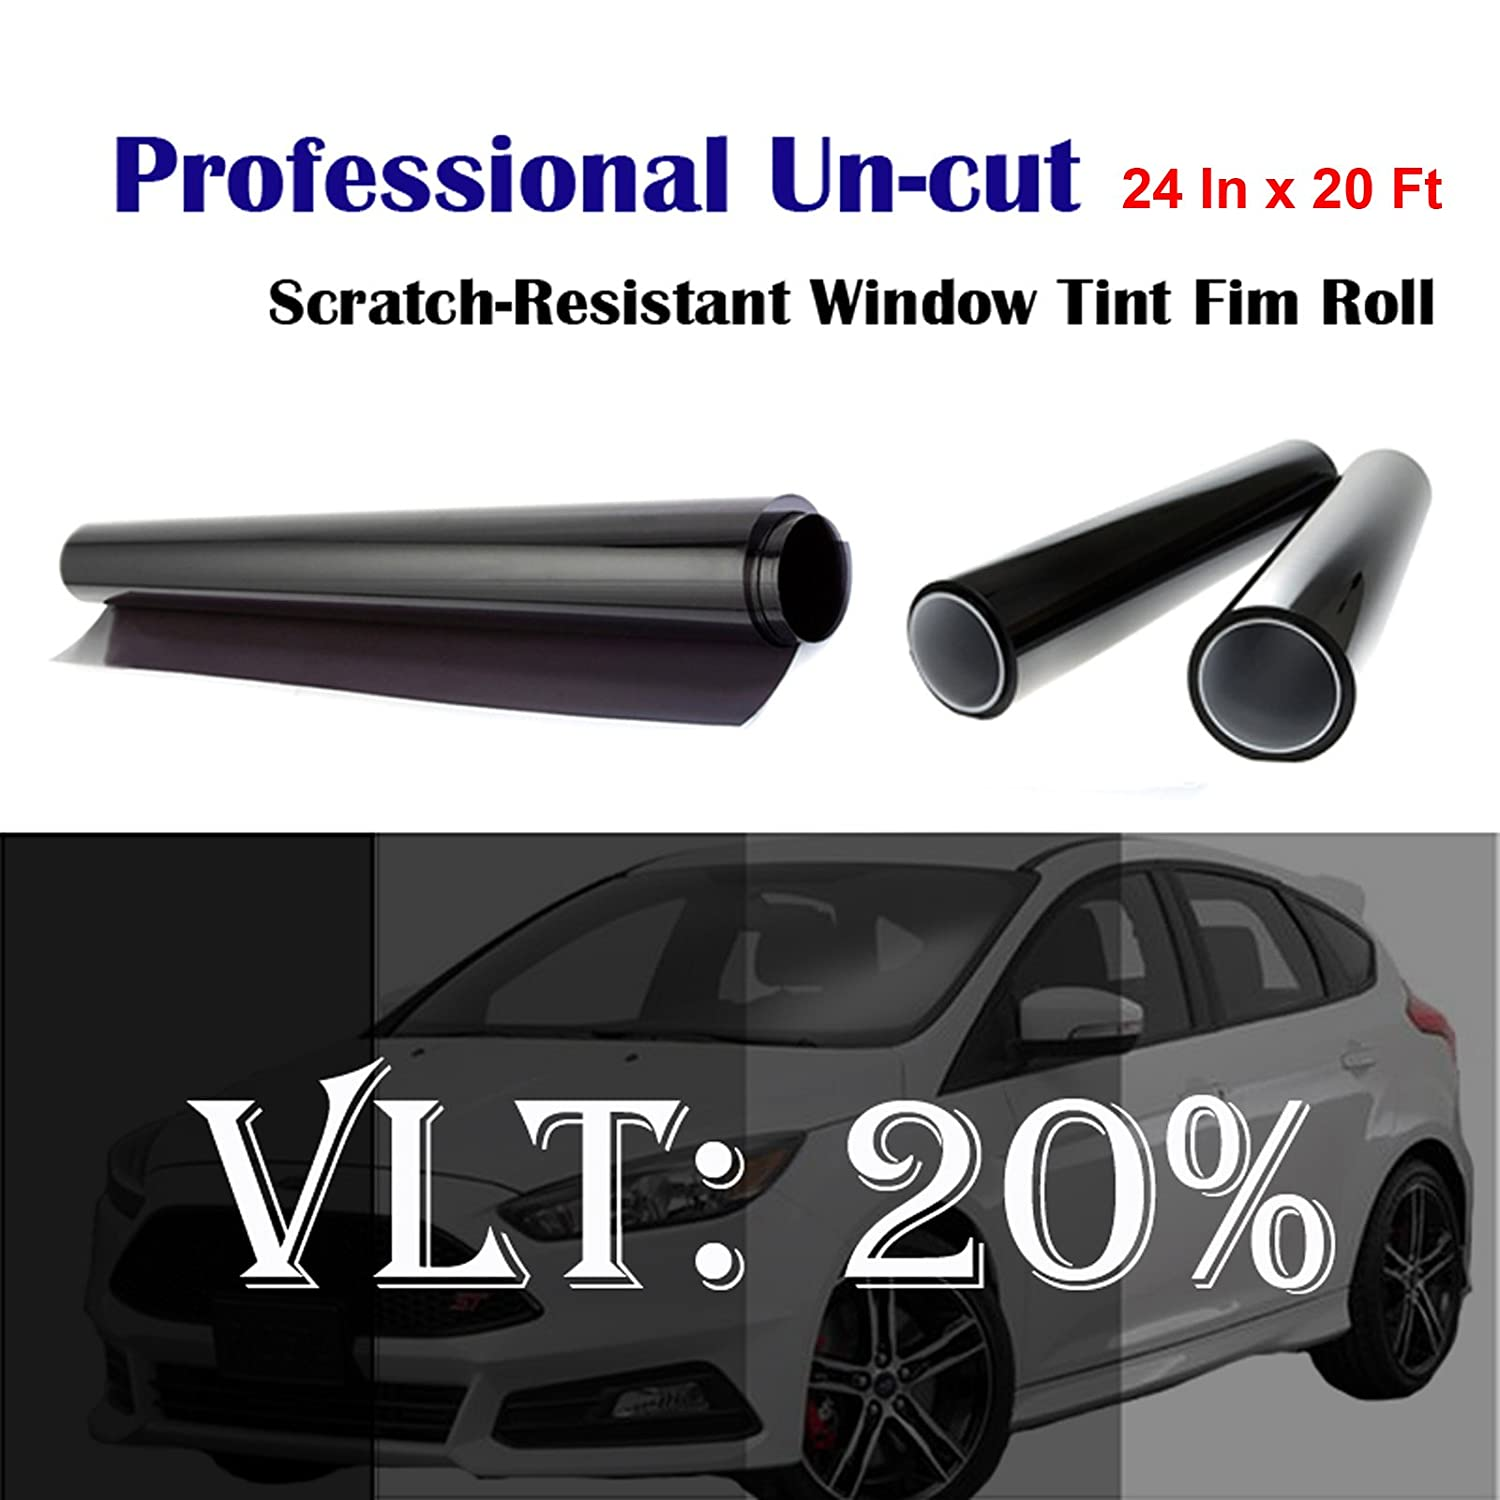 "Mkbrother Uncut Roll Window Tint Film 20% VLT 24"" In x 20' Ft Feet Car Home Office Glass"